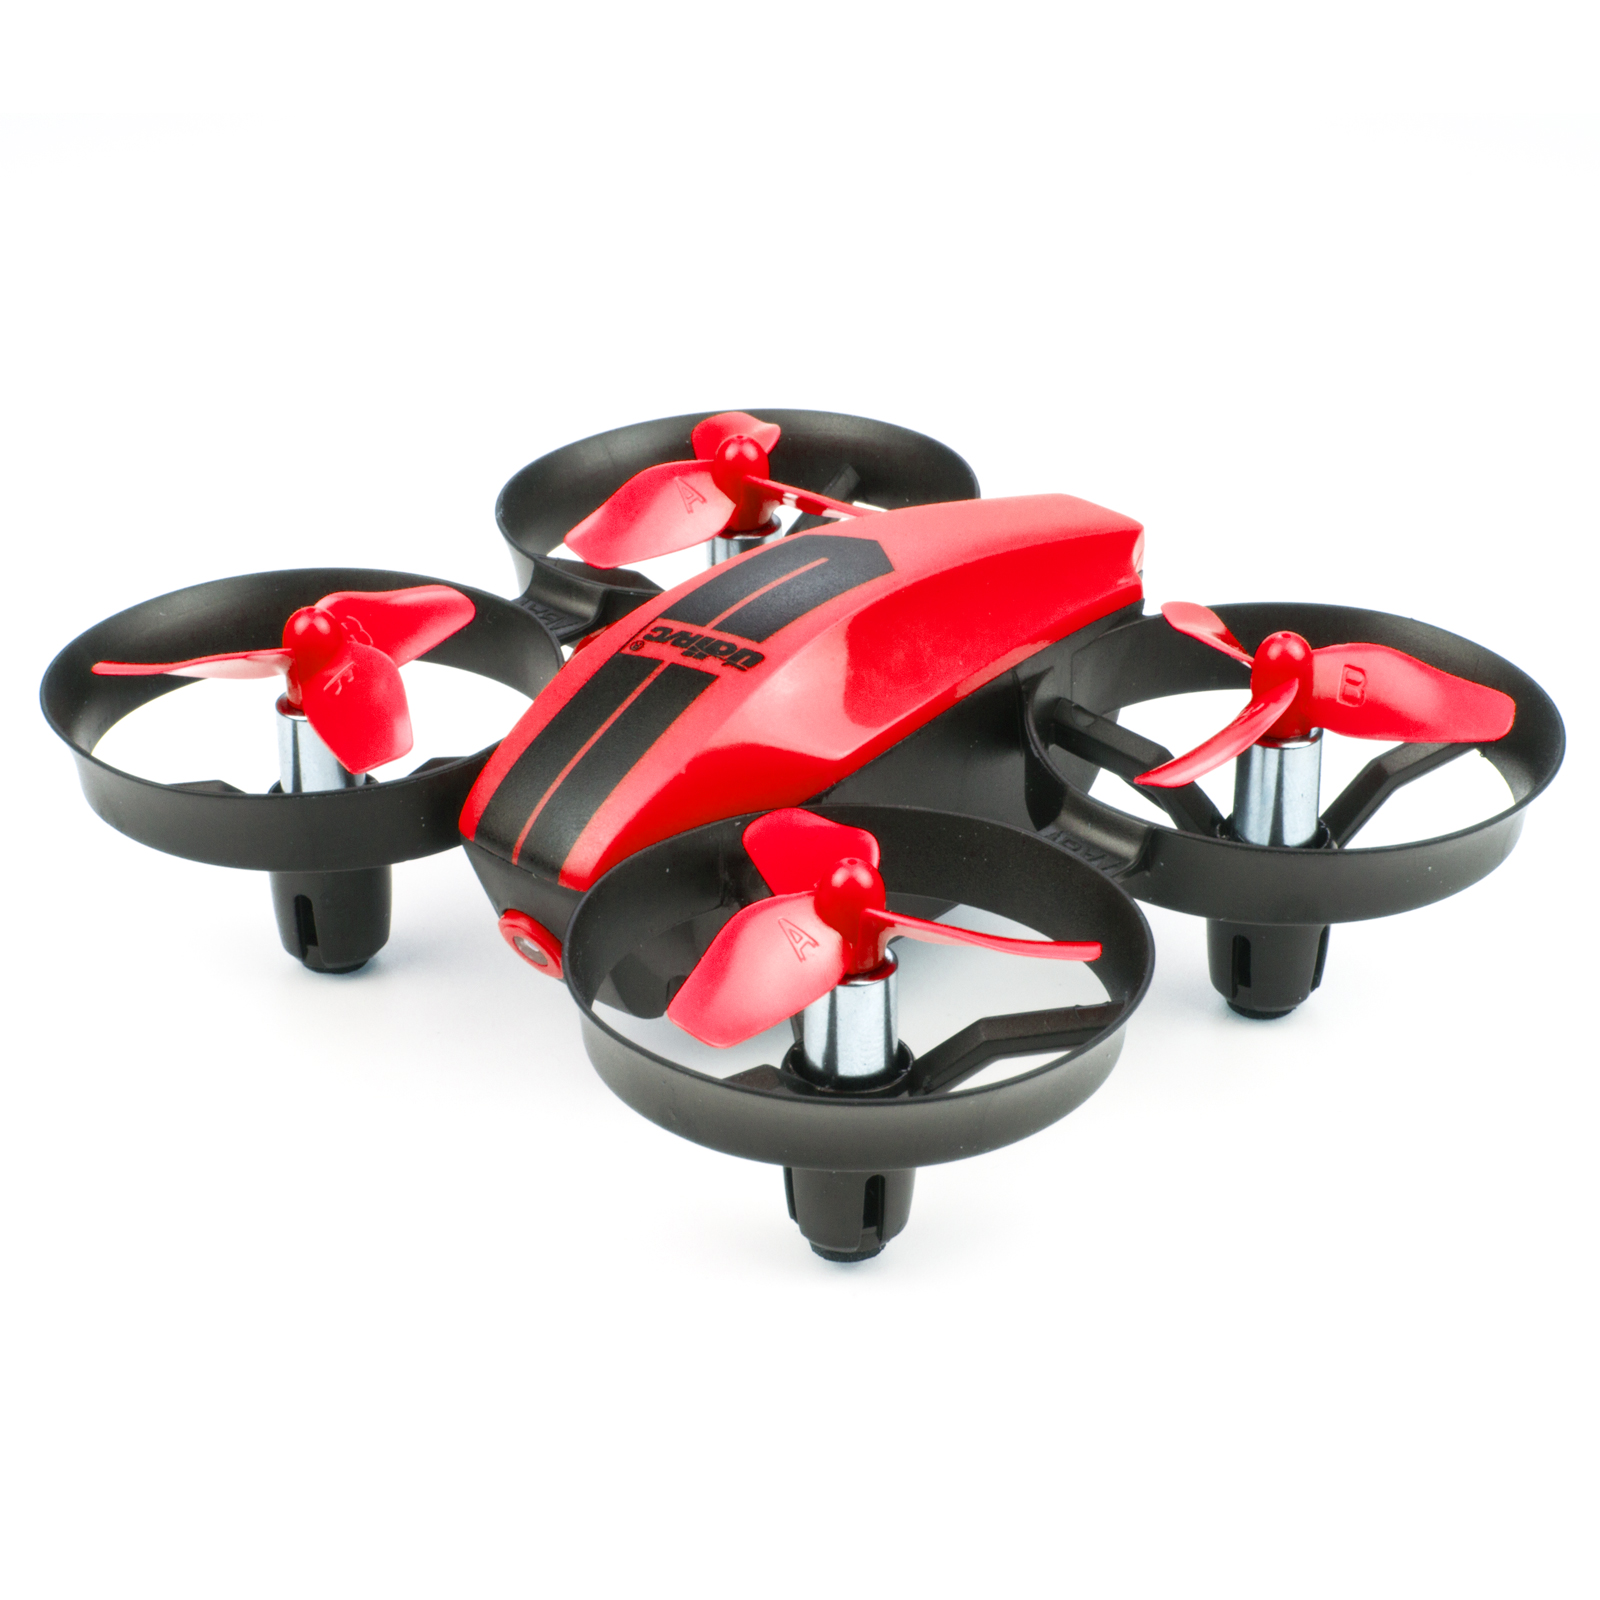 UDI U46 Mini Drone for Kids 2.4G 4CH RC Drones with Altitude Hold Headless Mode One Key... by